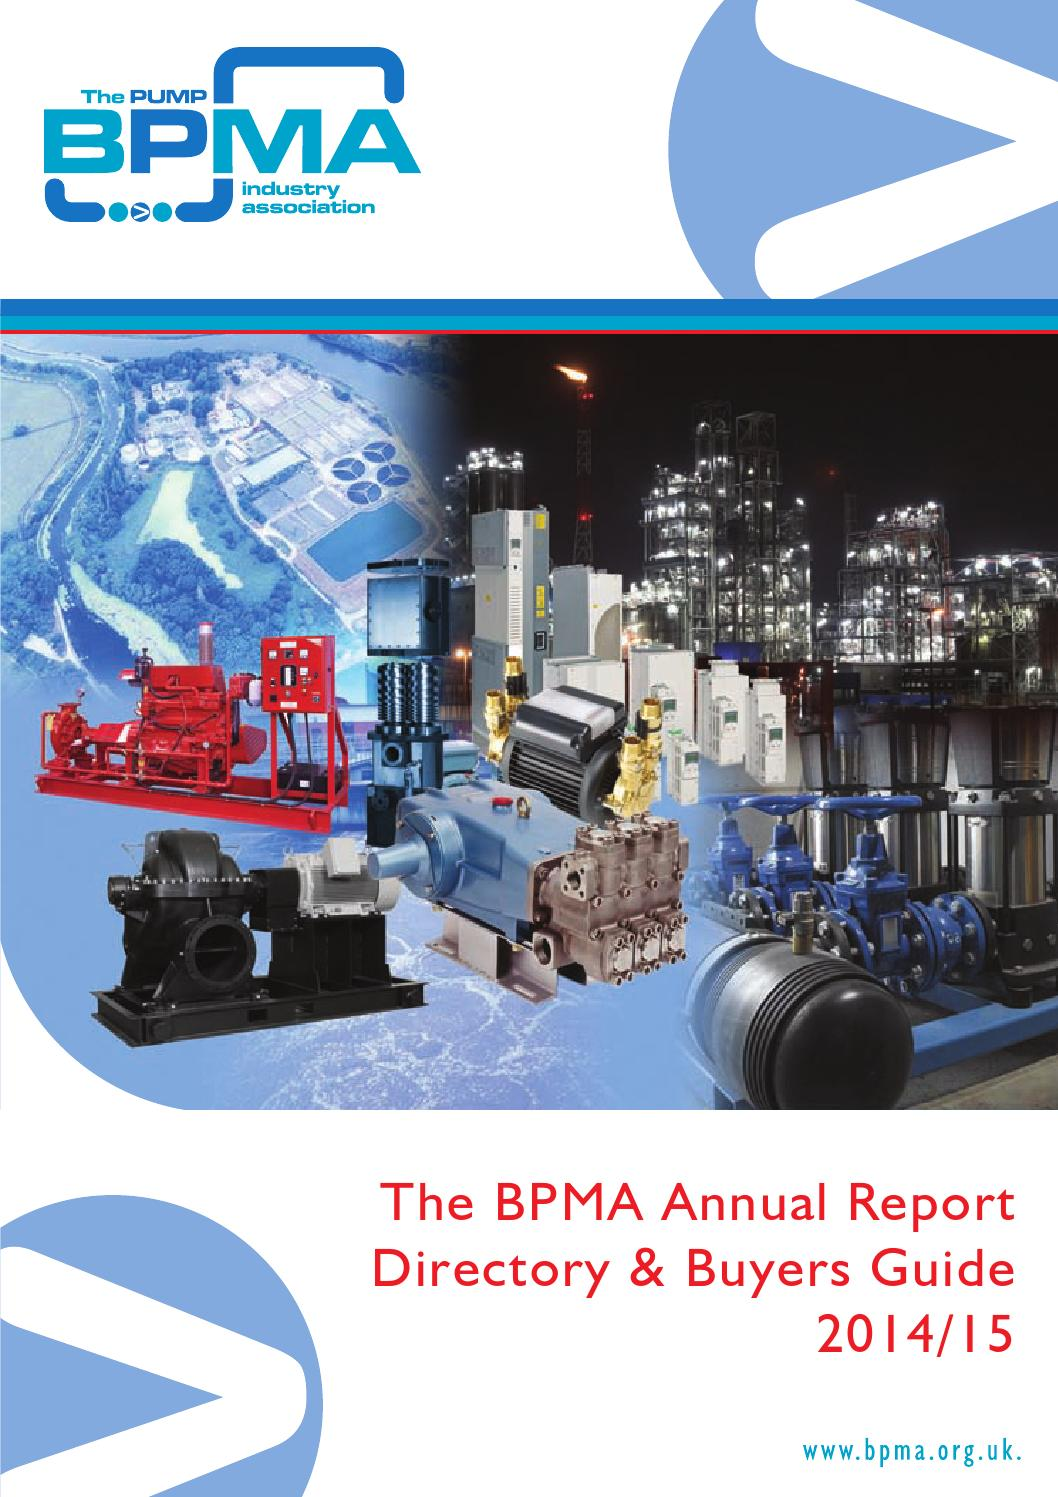 Bpma Annual Report Directory Buyers Guide 201415 By